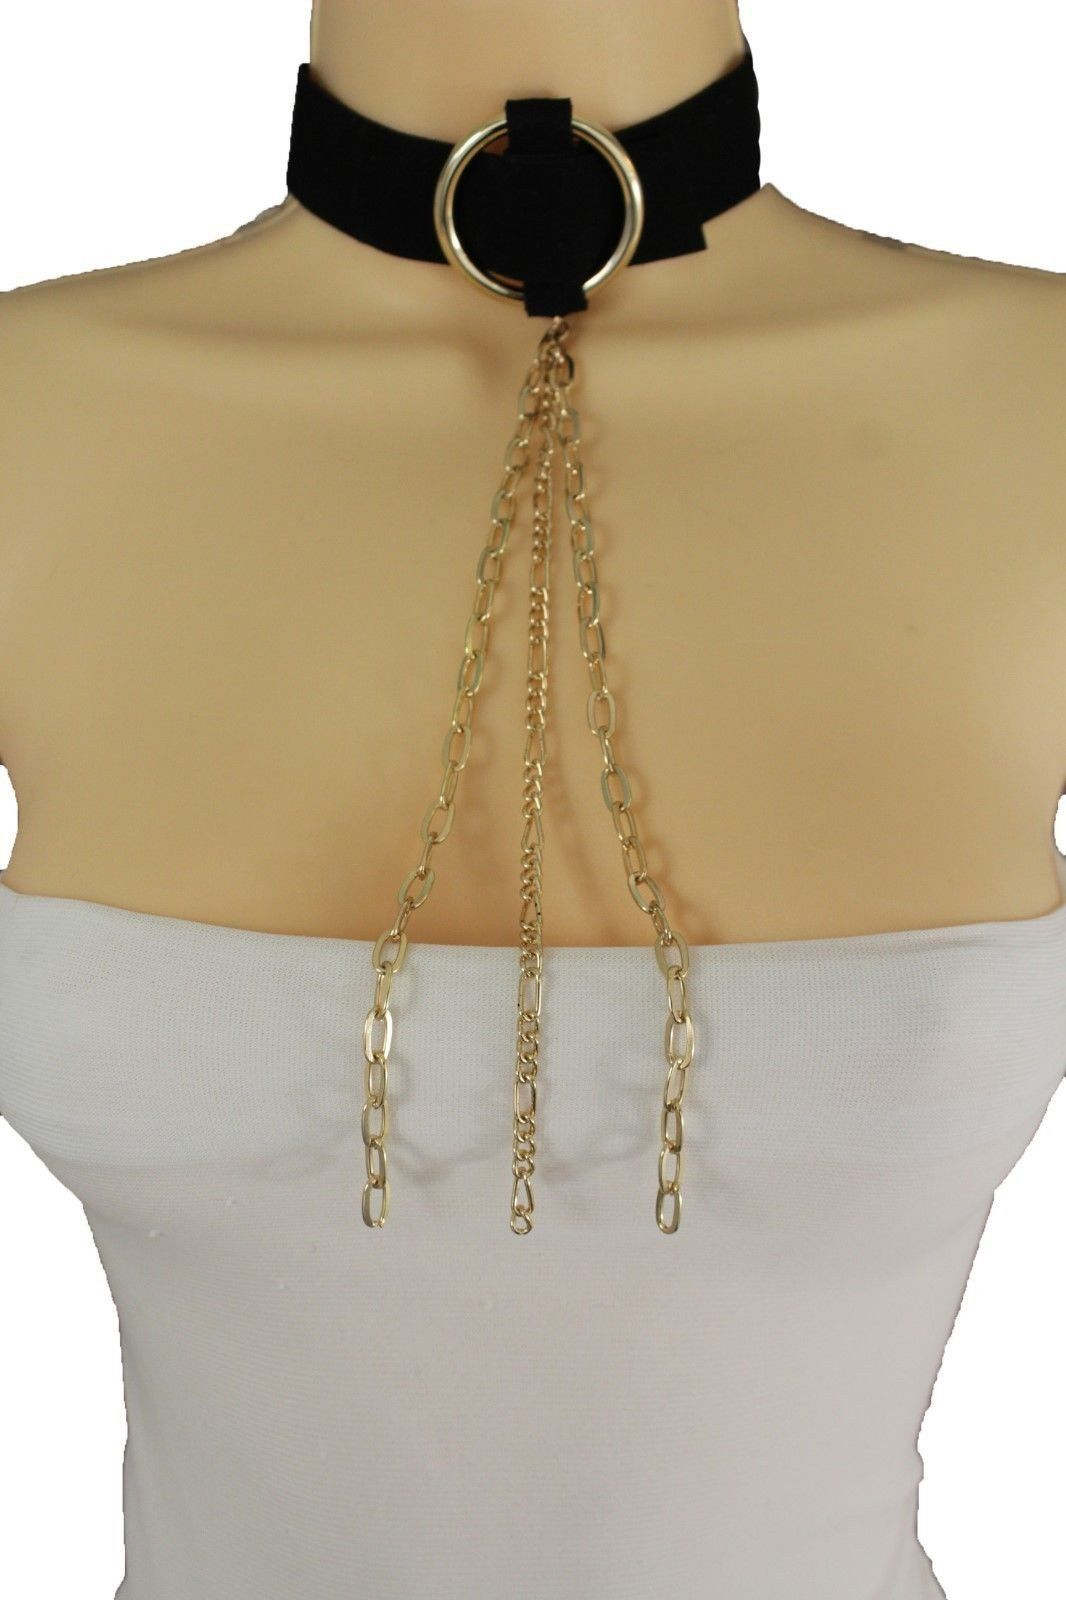 Black brown faux suede leather strap gold metal long chain fringes